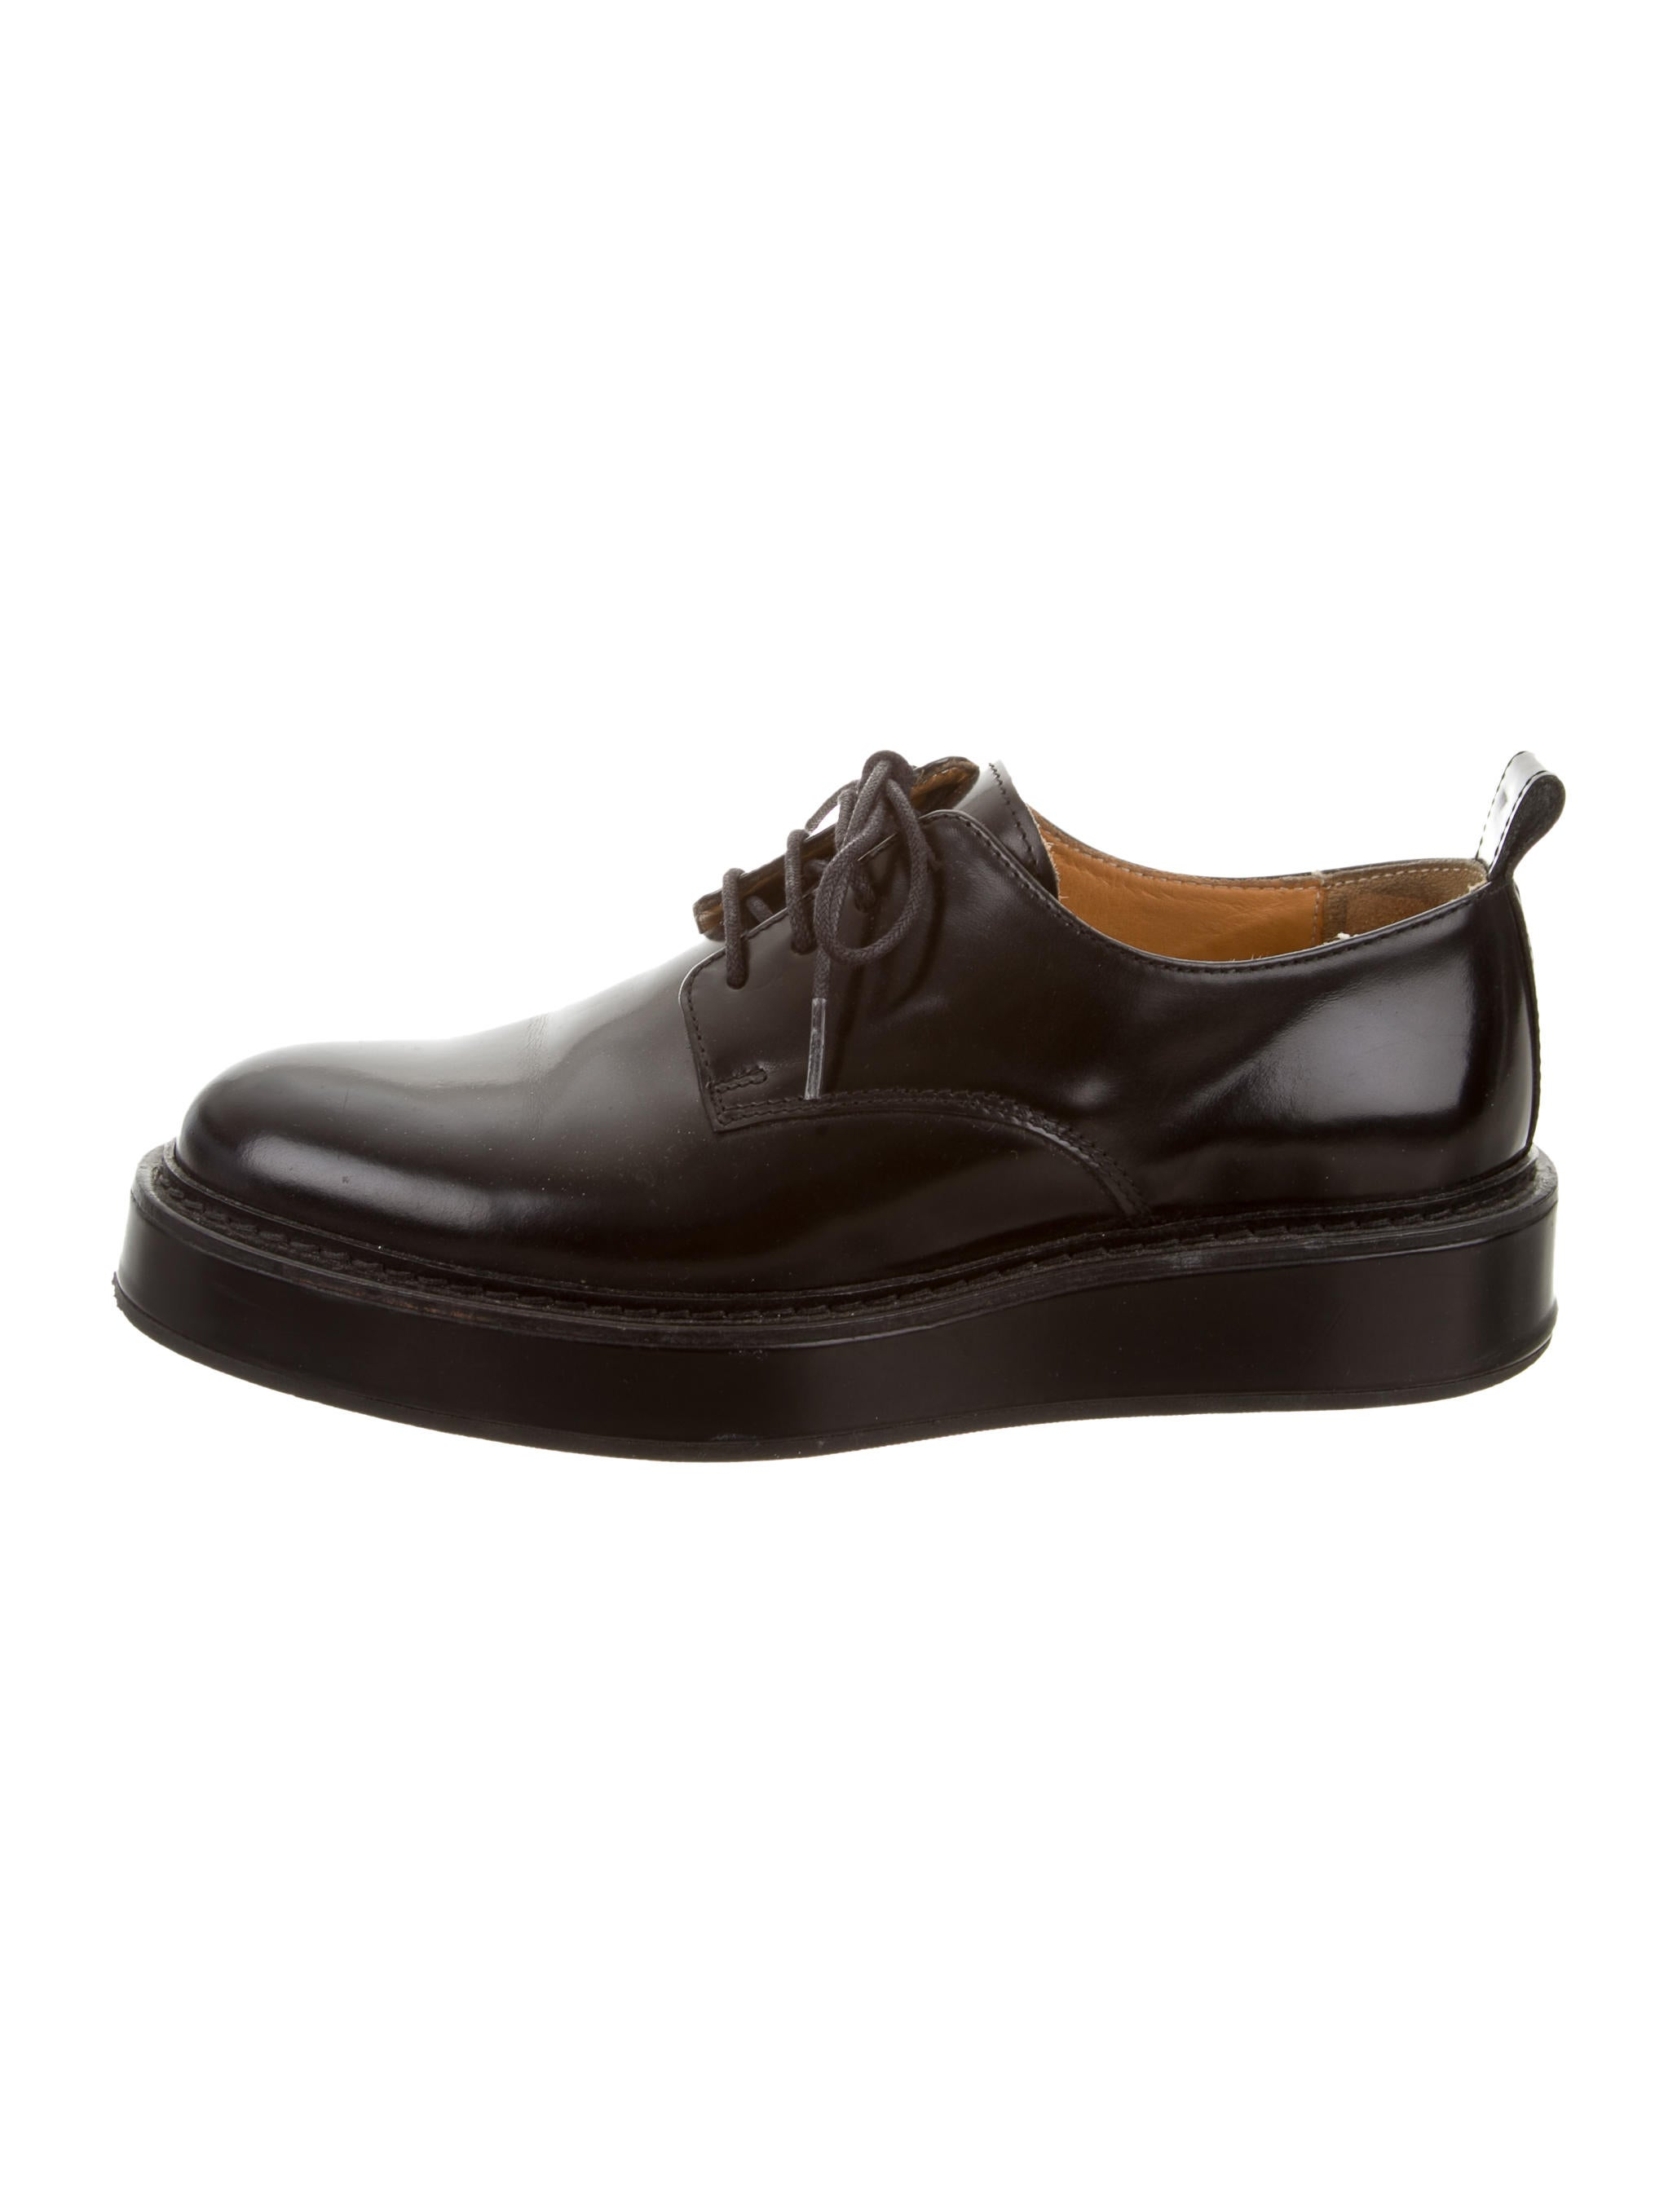 Refresh your formal footwear collection with these Derby shoes from our exclusive Jeff Banks range. Crafted from genuine leather, they feature punched detailing on the toe and are finished with three pairs of eyelets and classic lace fastenings to create a comfortable fit.